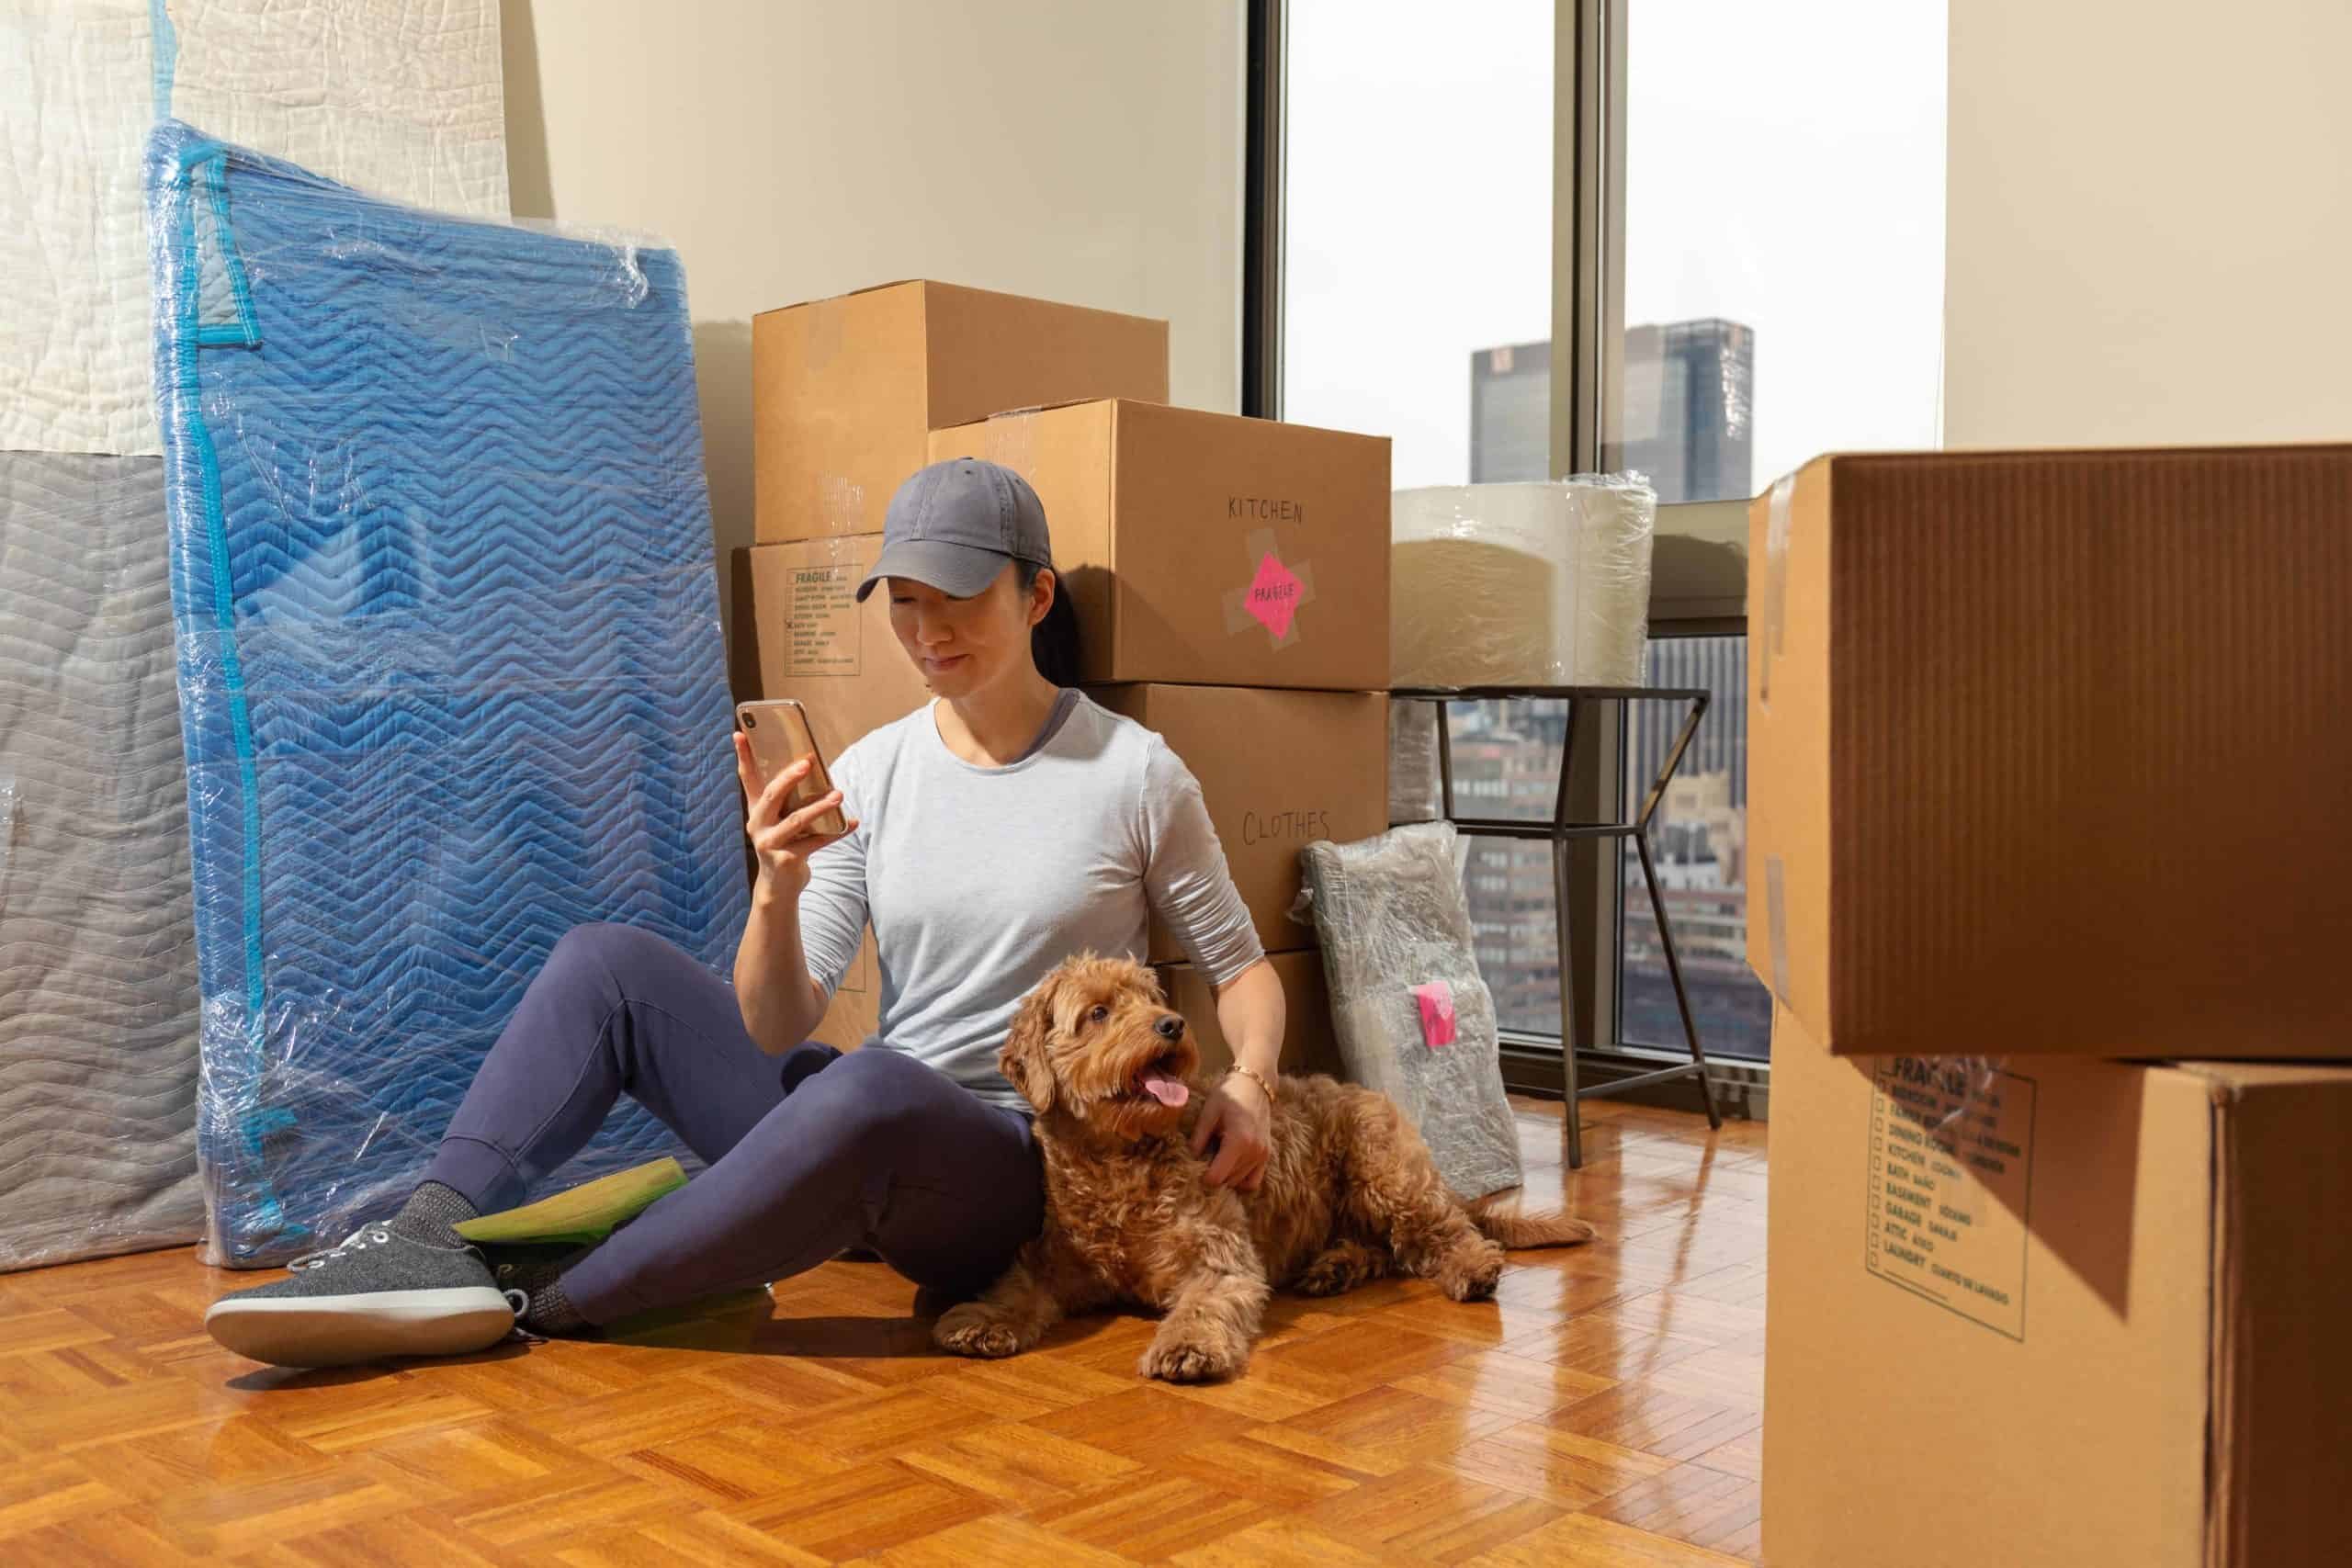 Woman relaxes with her goldendoodle after moving into a new apartment. Focus on 10 red flags to avoid when renting with pets. Follow your landlord's rules, train your dog, provide toys, and limit the time alone.